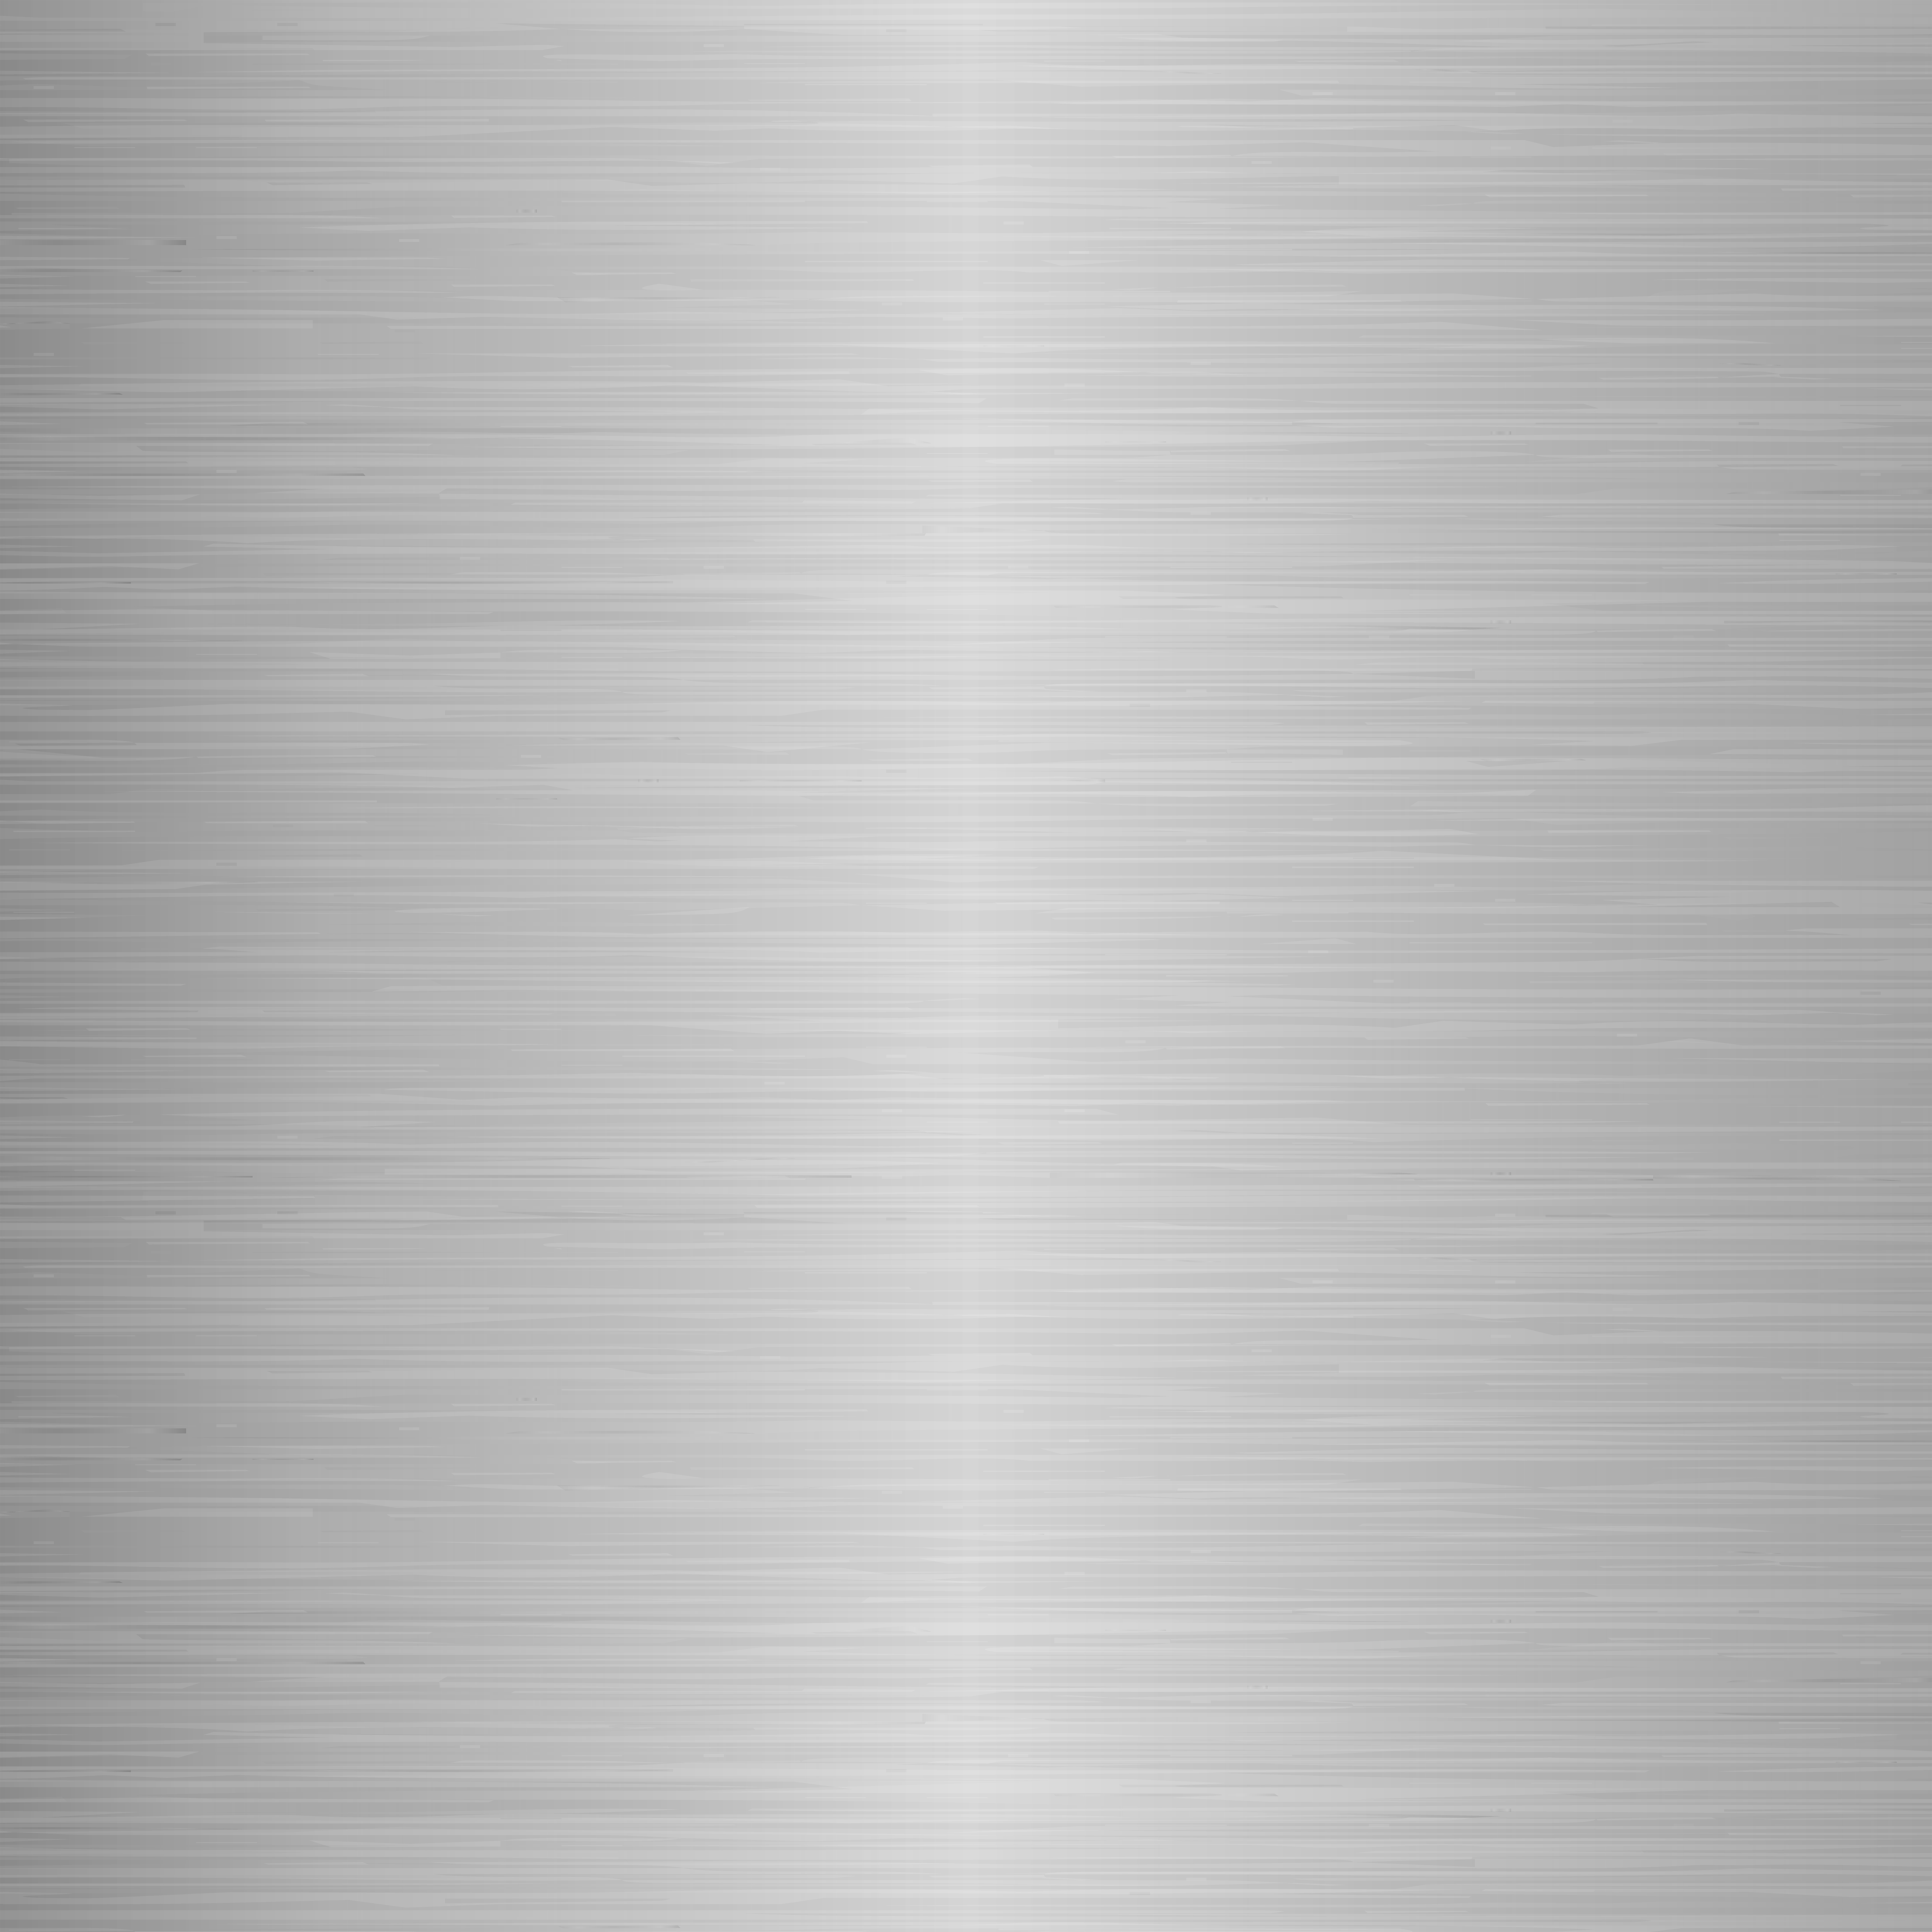 Silver Metal Background   Gallery Yopriceville - High-Quality ...